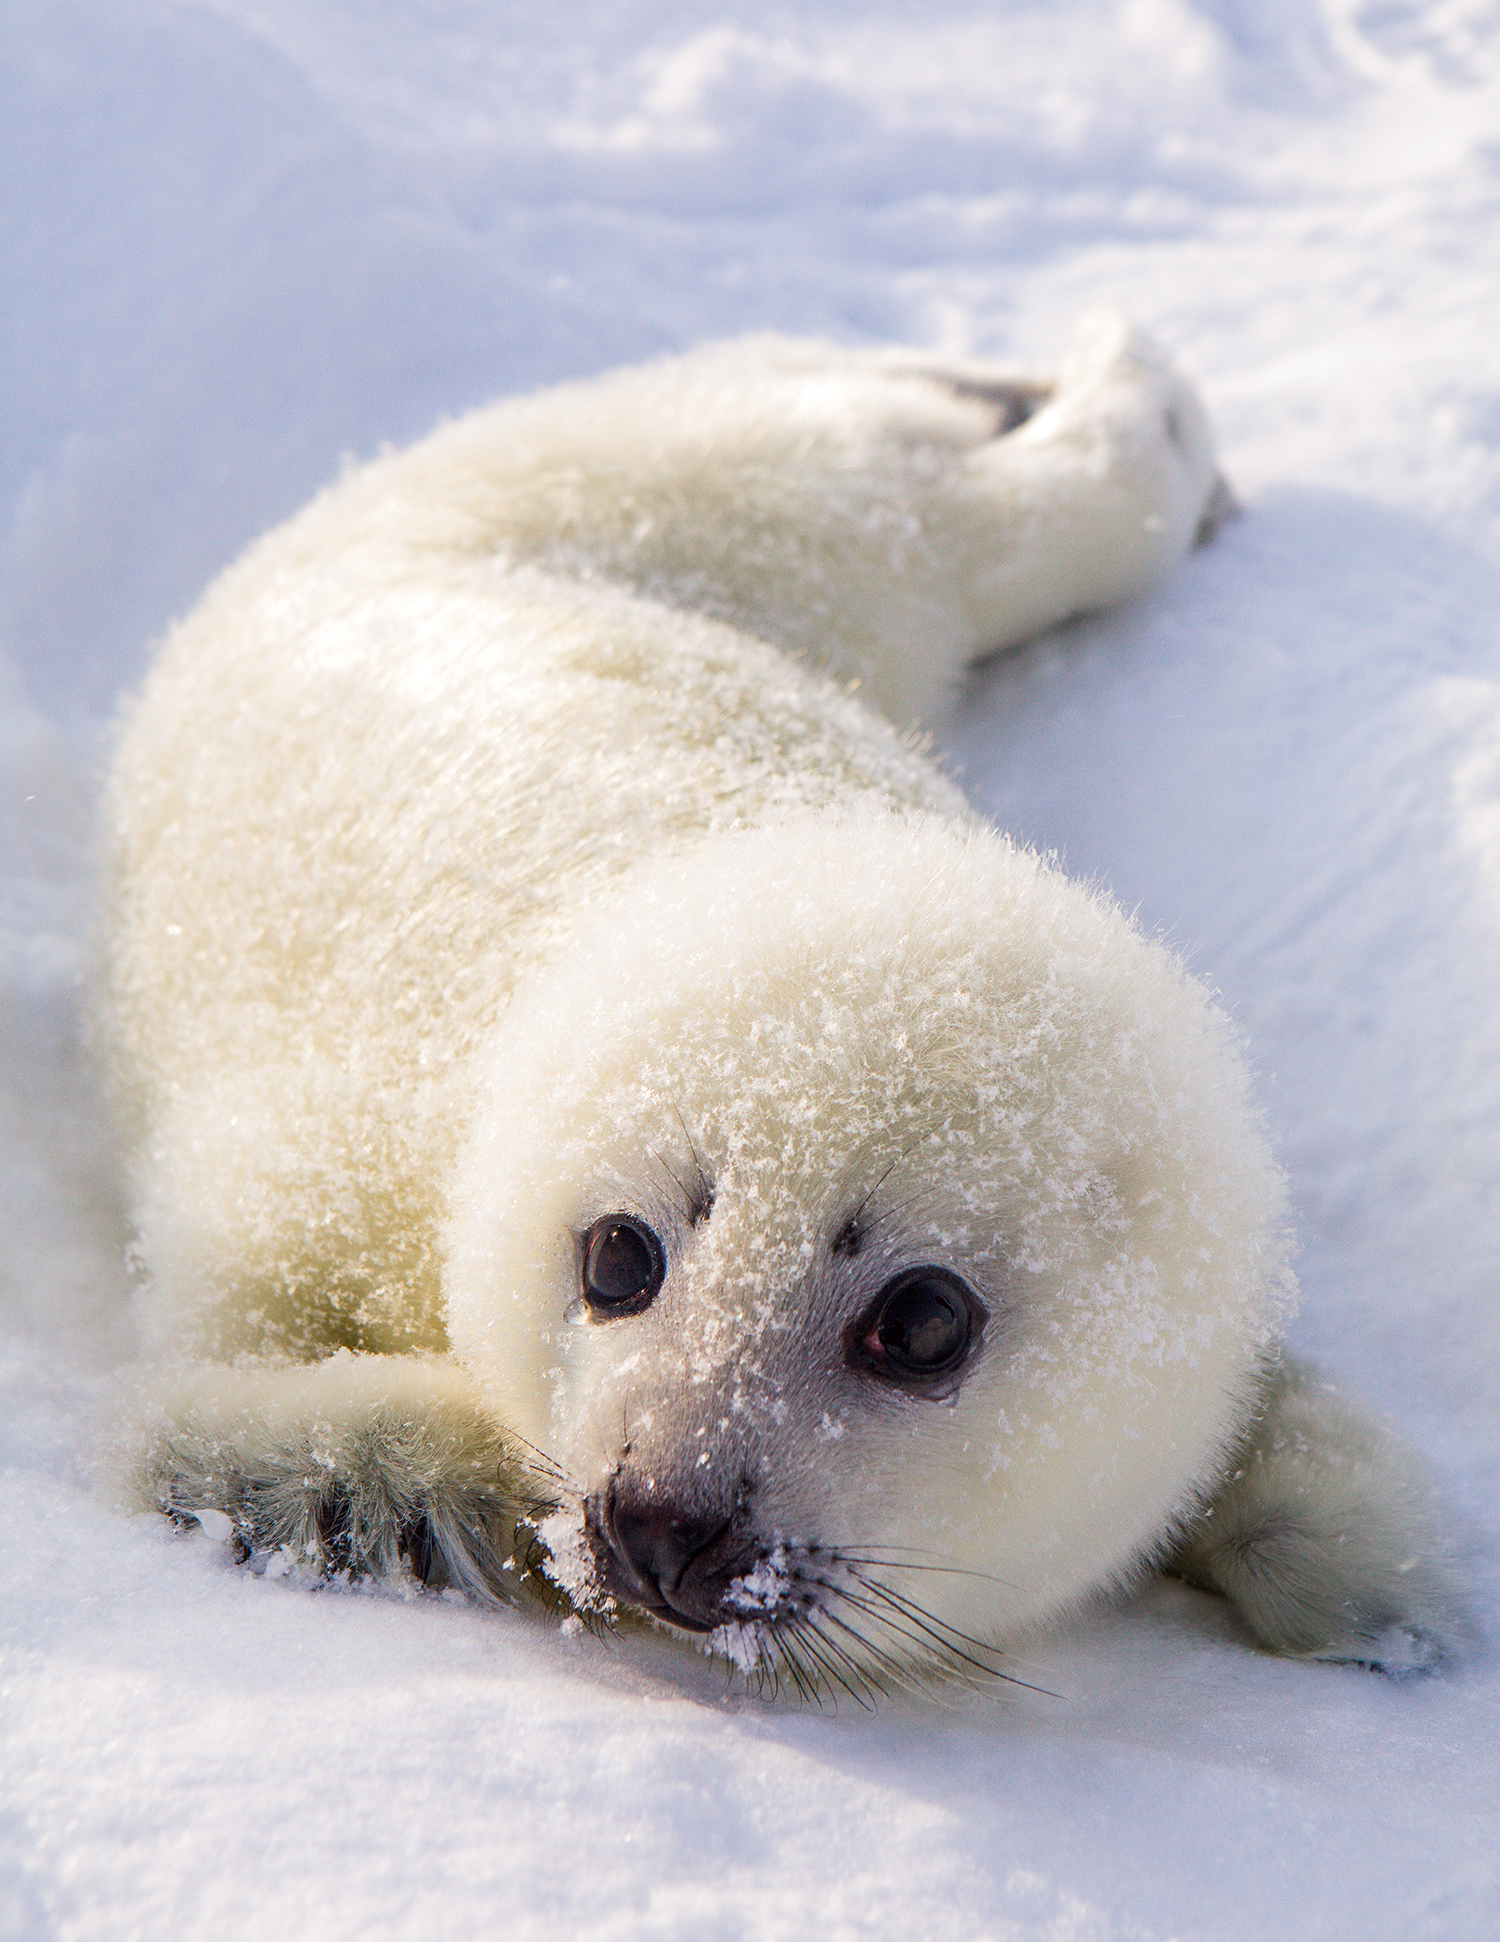 White Cub Greenland Seal. Also known as a Harp seal or saddleback seal.